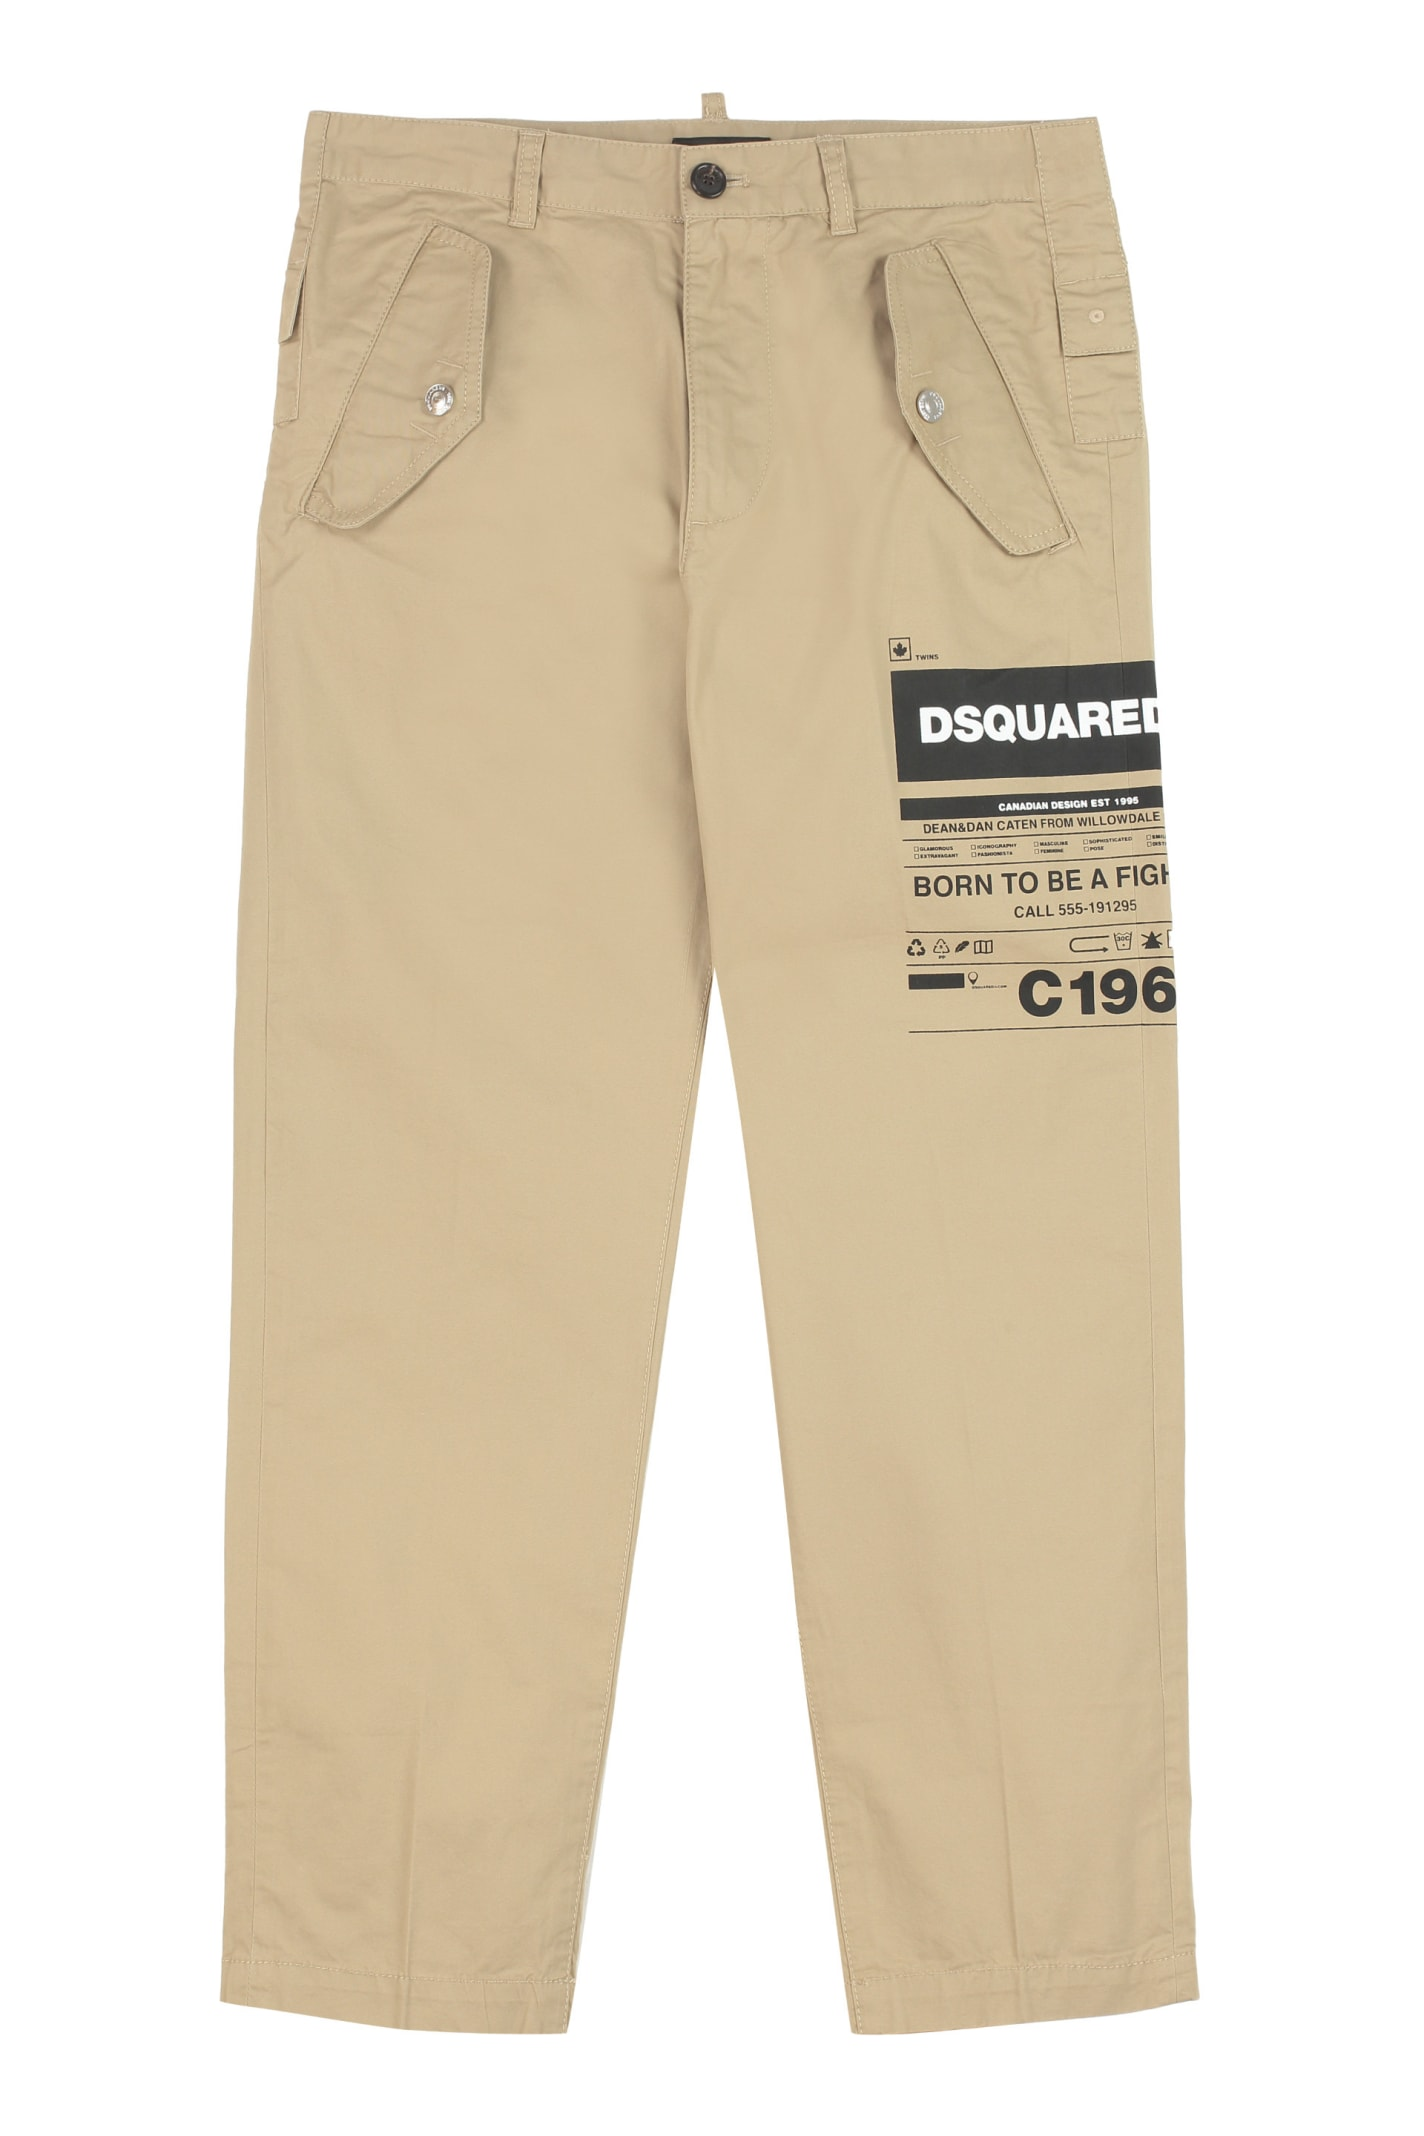 Dsquared2 Cottons STRETCH COTTON TROUSERS